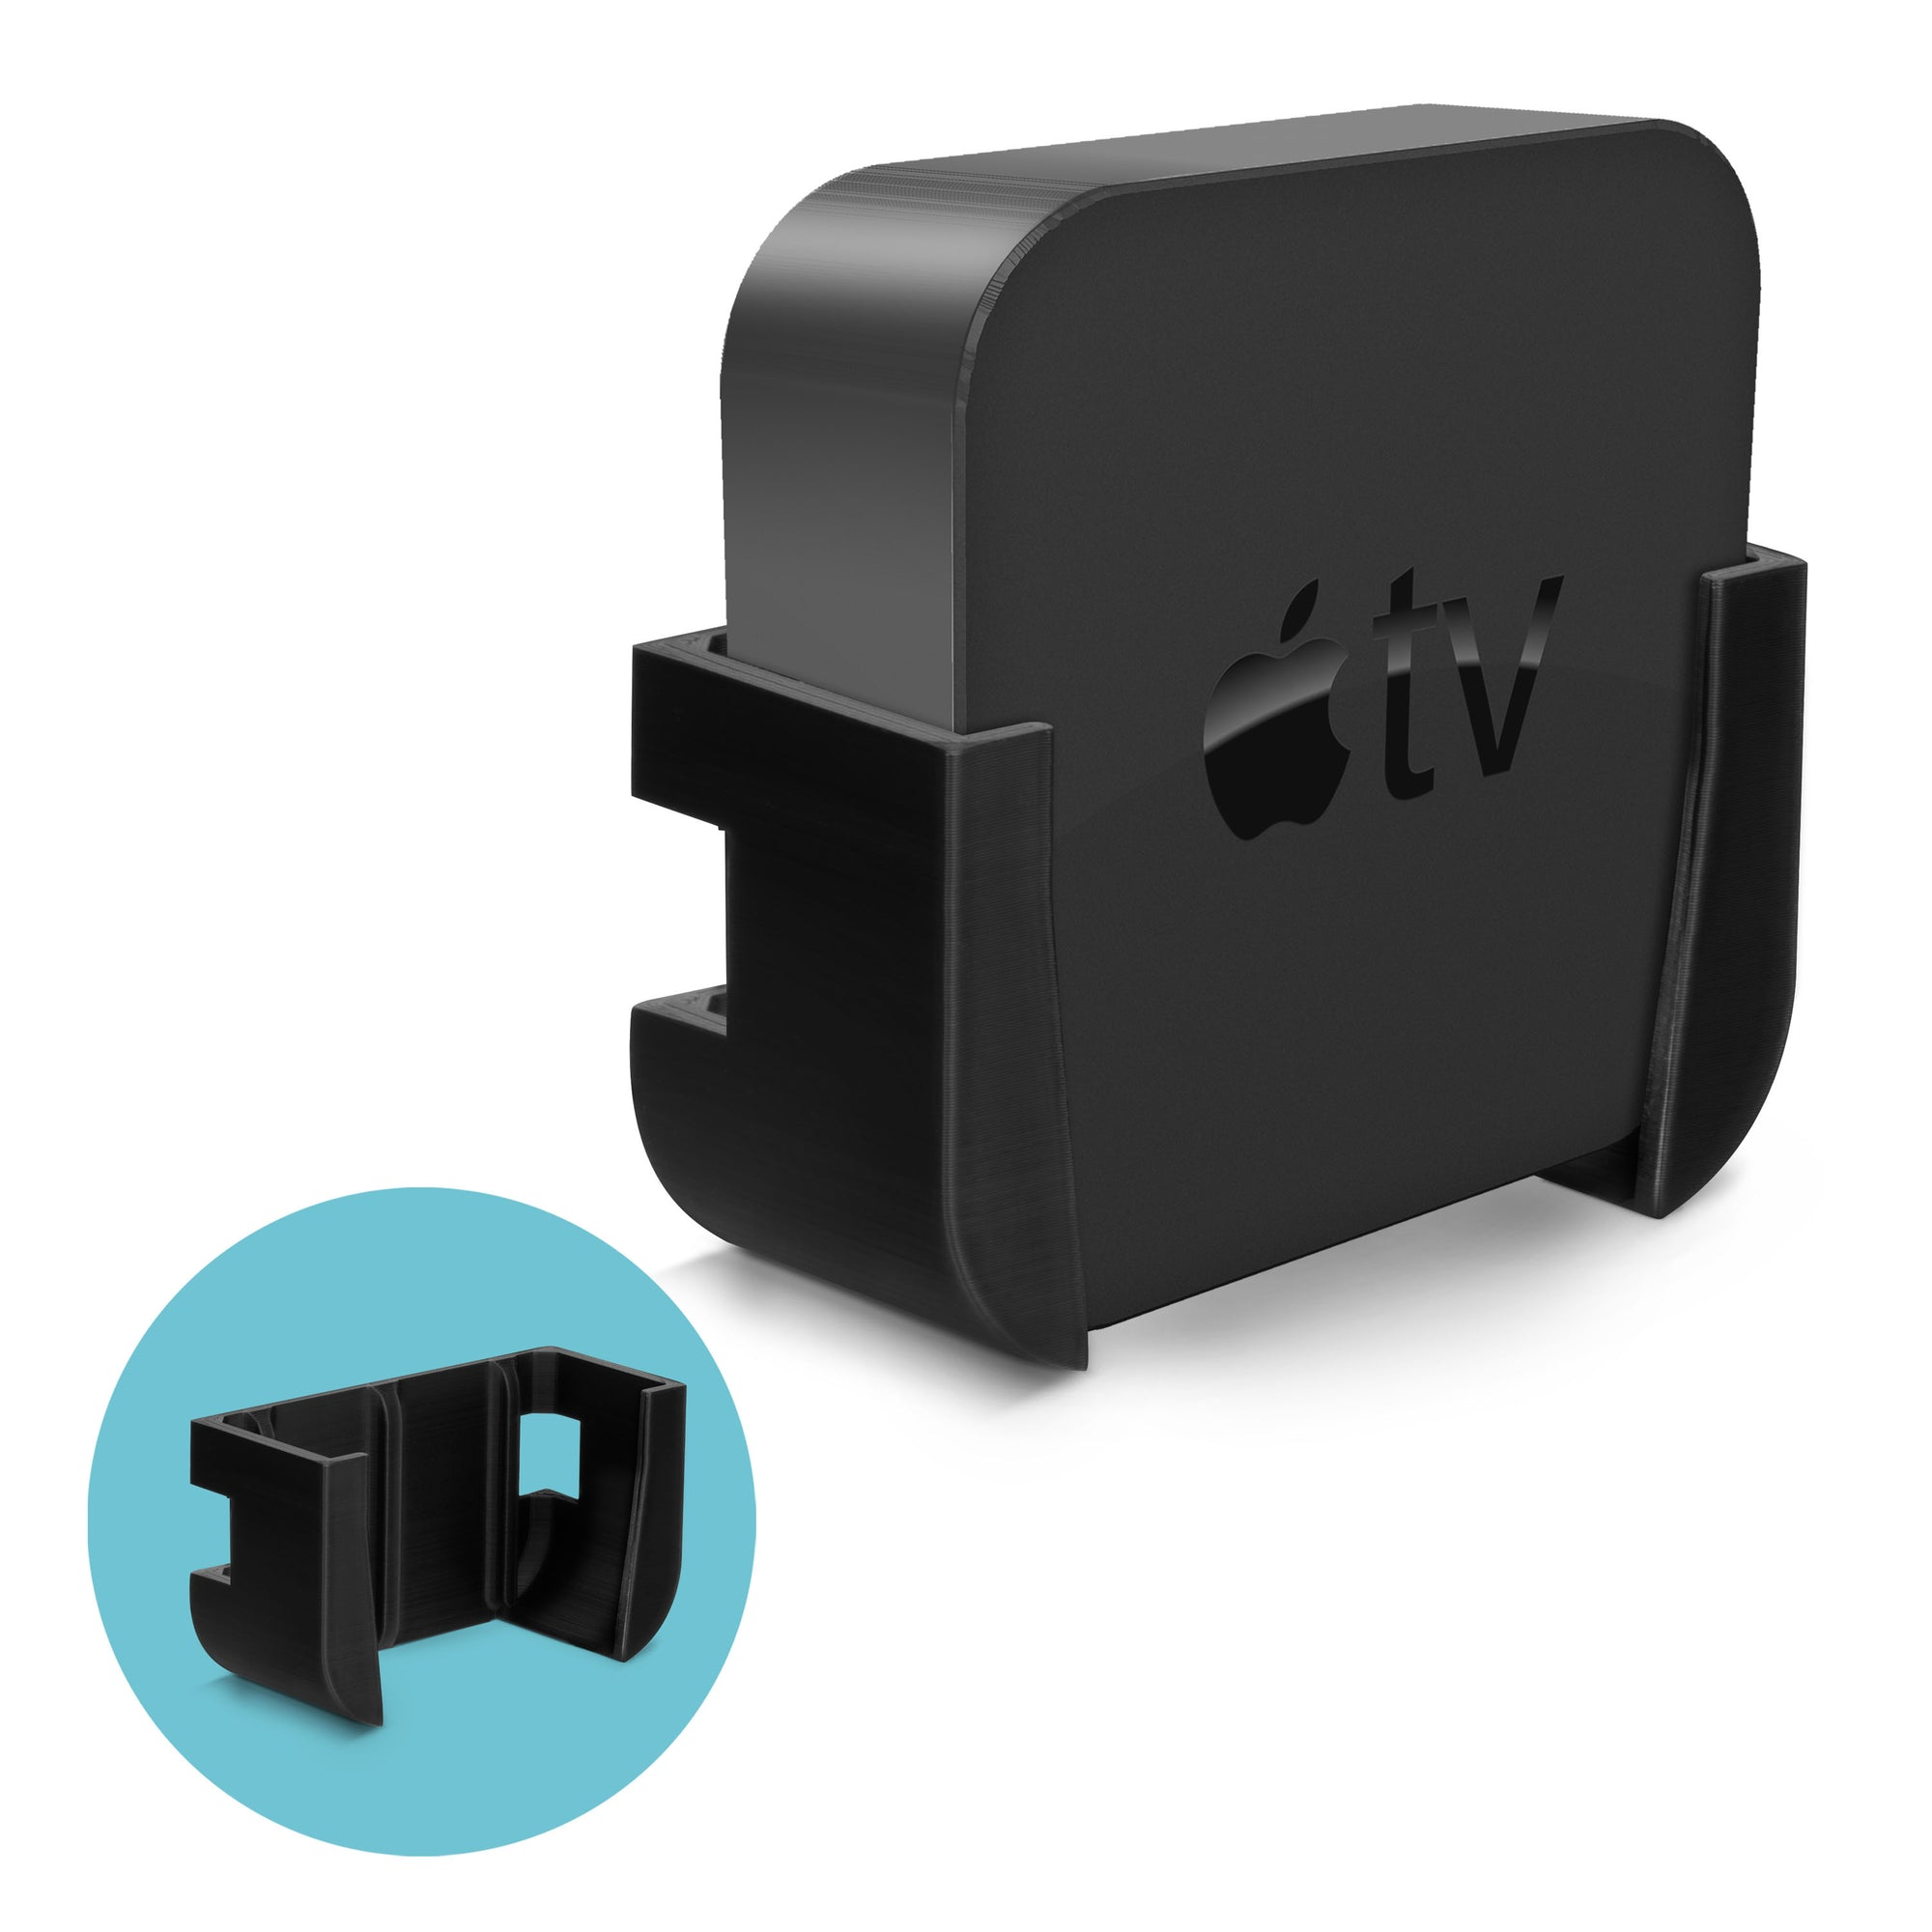 Wall & TV Mount Bracket For Apple TV 4K & HD - Stick On